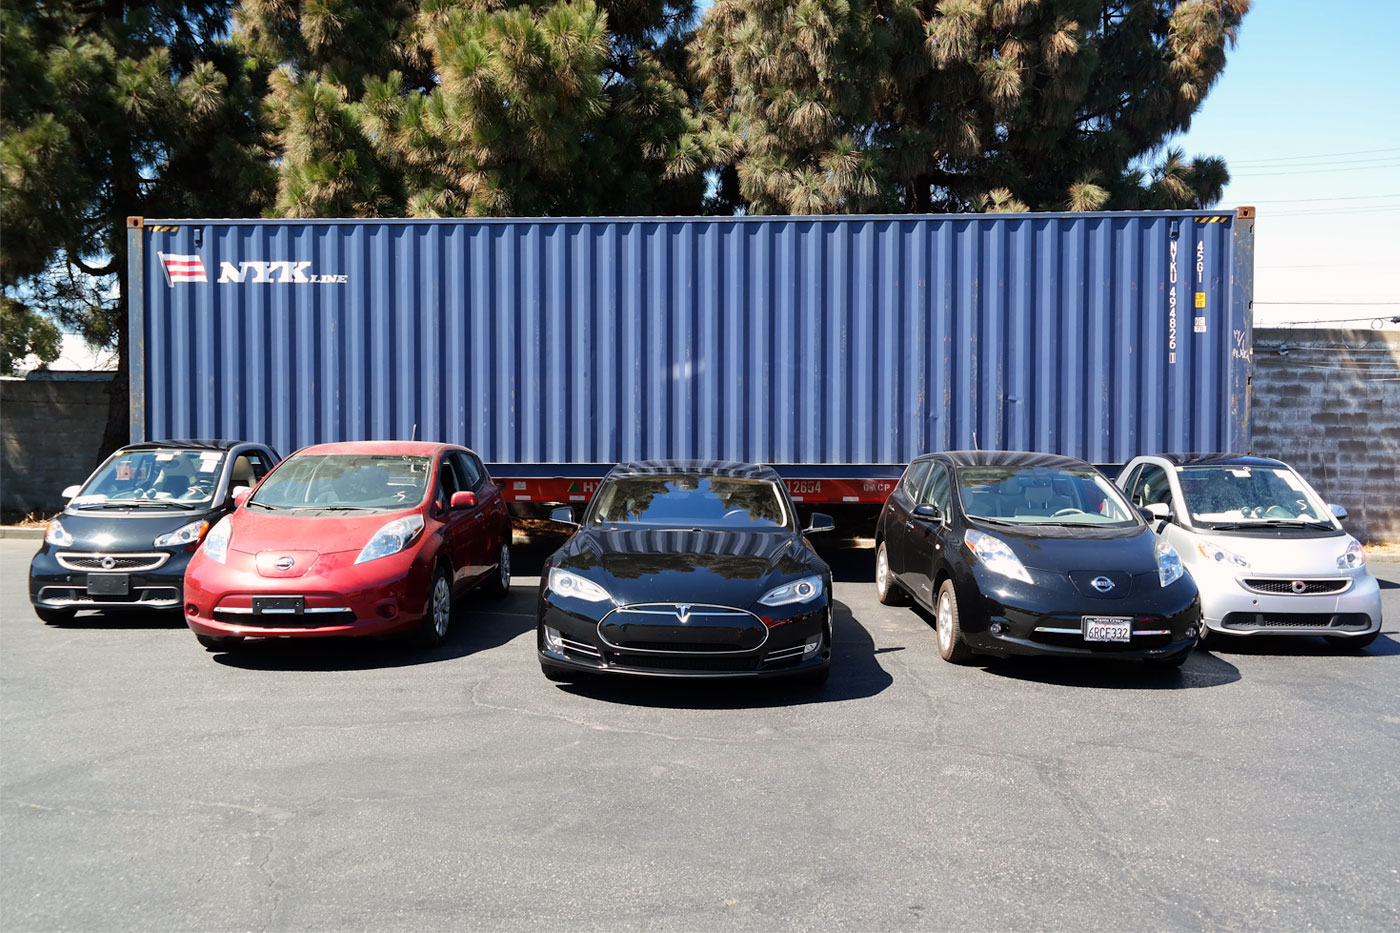 electric-cars-in-front-of-container-ukraine.jpg